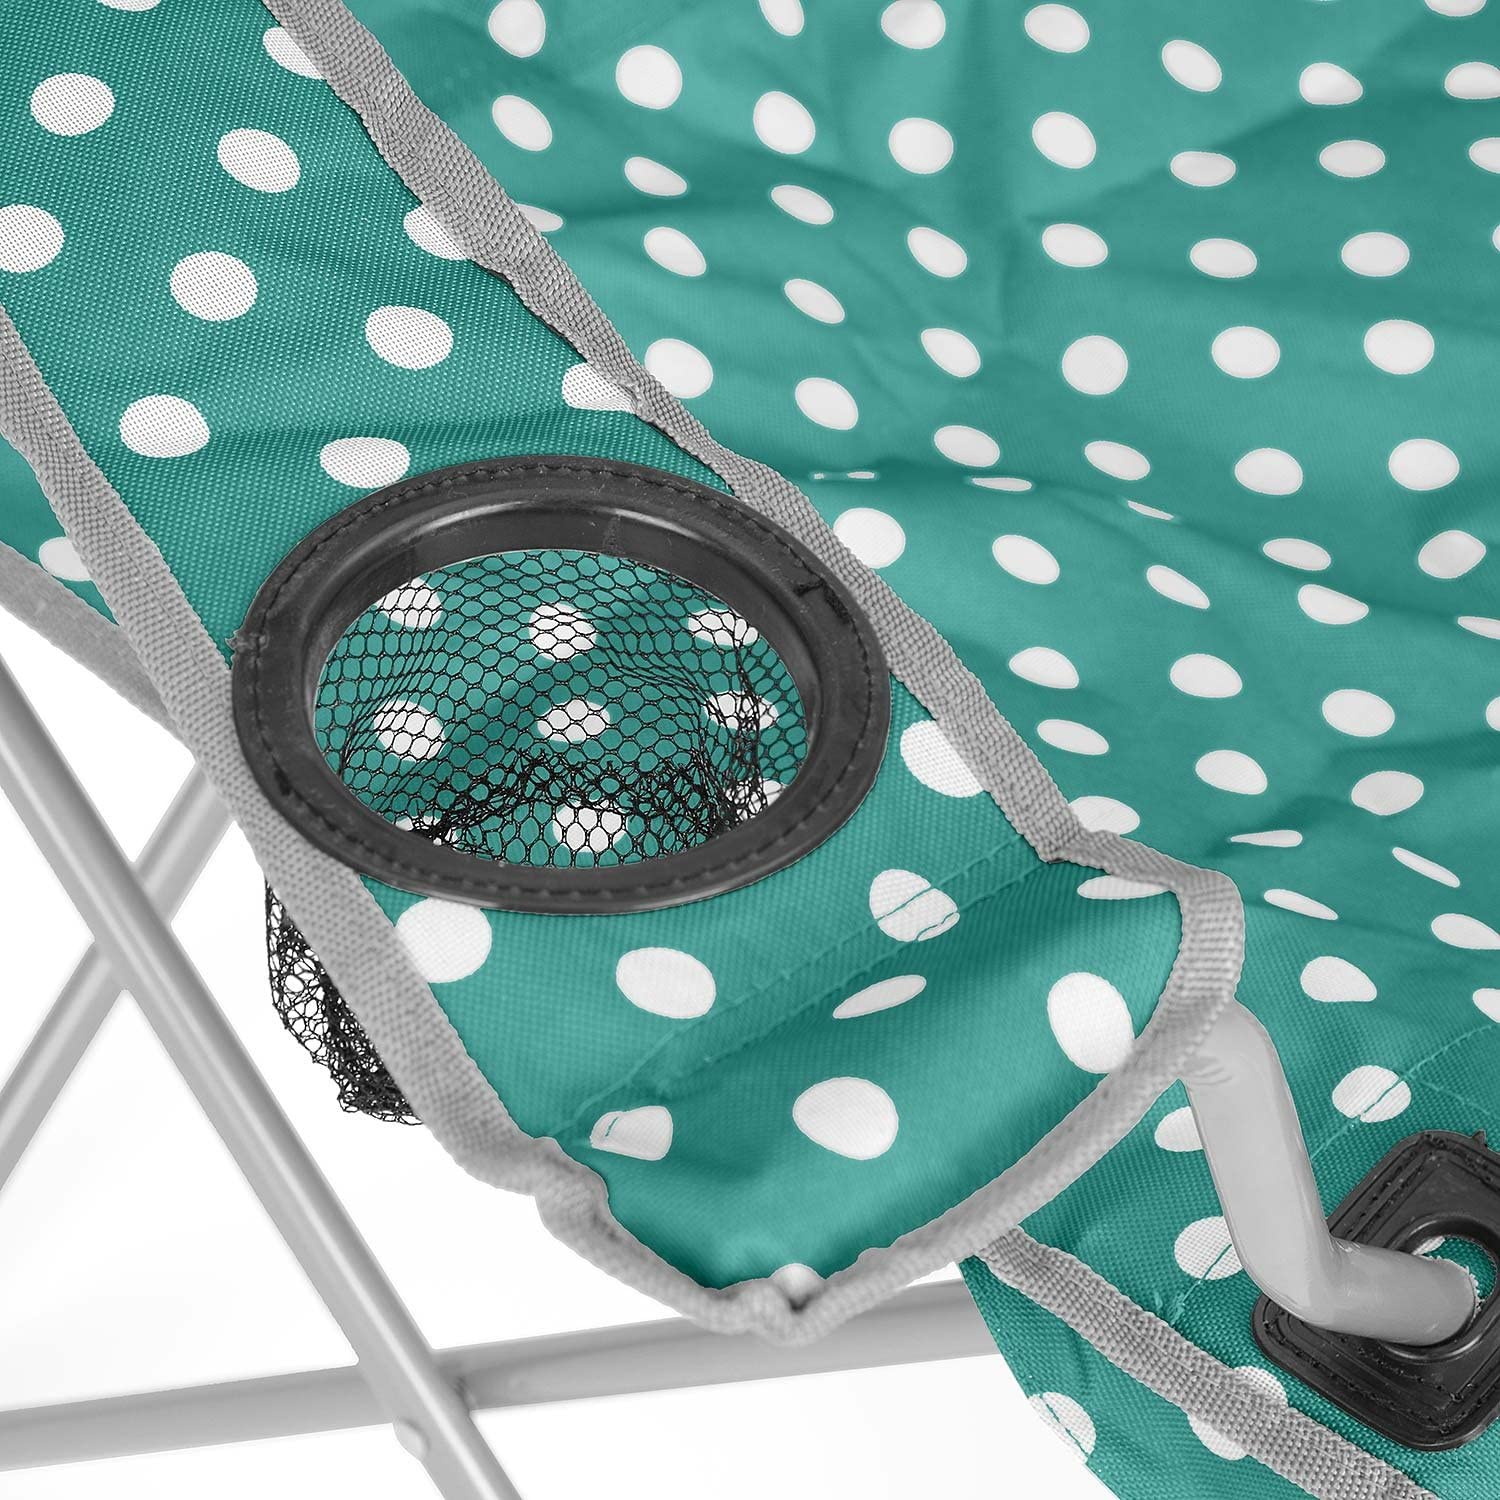 Polka Dot Pattern Festival Beach Heavy Duty Frame Shoulder Travel Bag Cup Holder Trail Compact Folding Camping Chair Outdoor